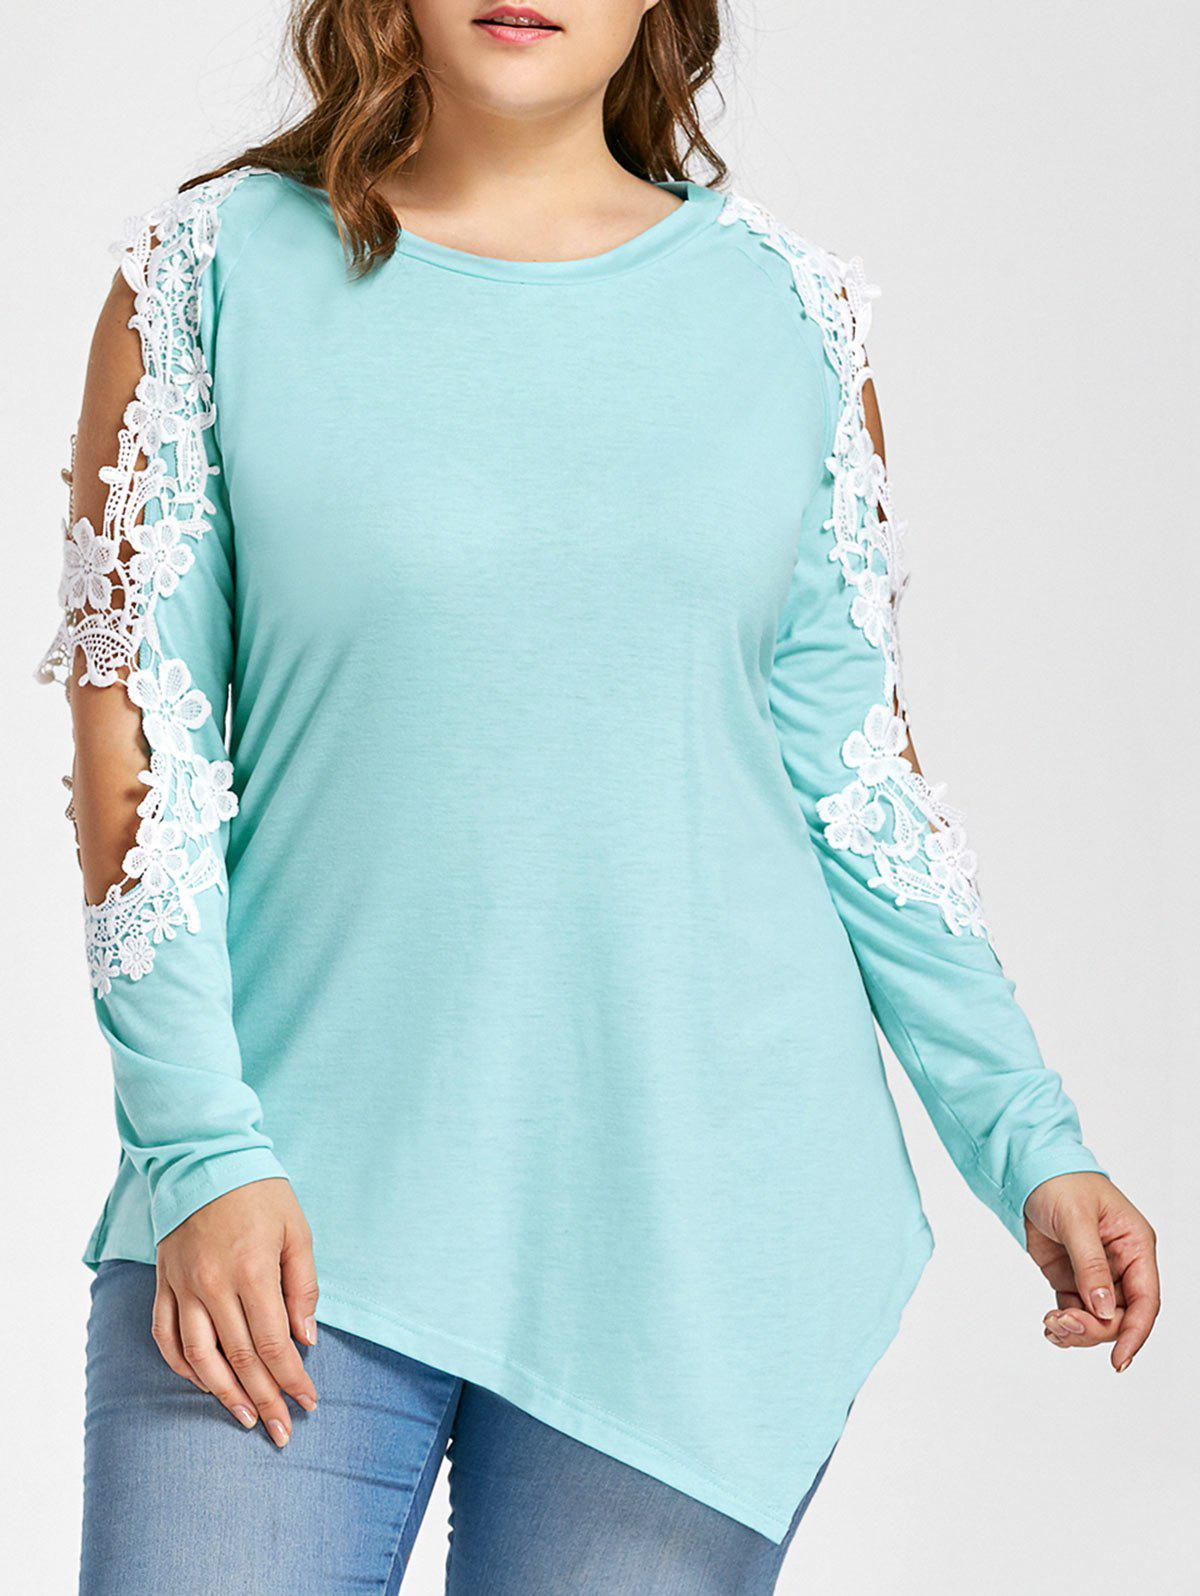 Plus Size Lace Panel Asymmetrical Cold Shoulder TeeWOMEN<br><br>Size: 5XL; Color: BREEZY; Material: Cotton,Polyester; Shirt Length: Long; Sleeve Length: Full; Collar: Round Neck; Style: Fashion; Season: Fall; Embellishment: Lace; Pattern Type: Others; Weight: 0.3100kg; Package Contents: 1 x T-shirt;